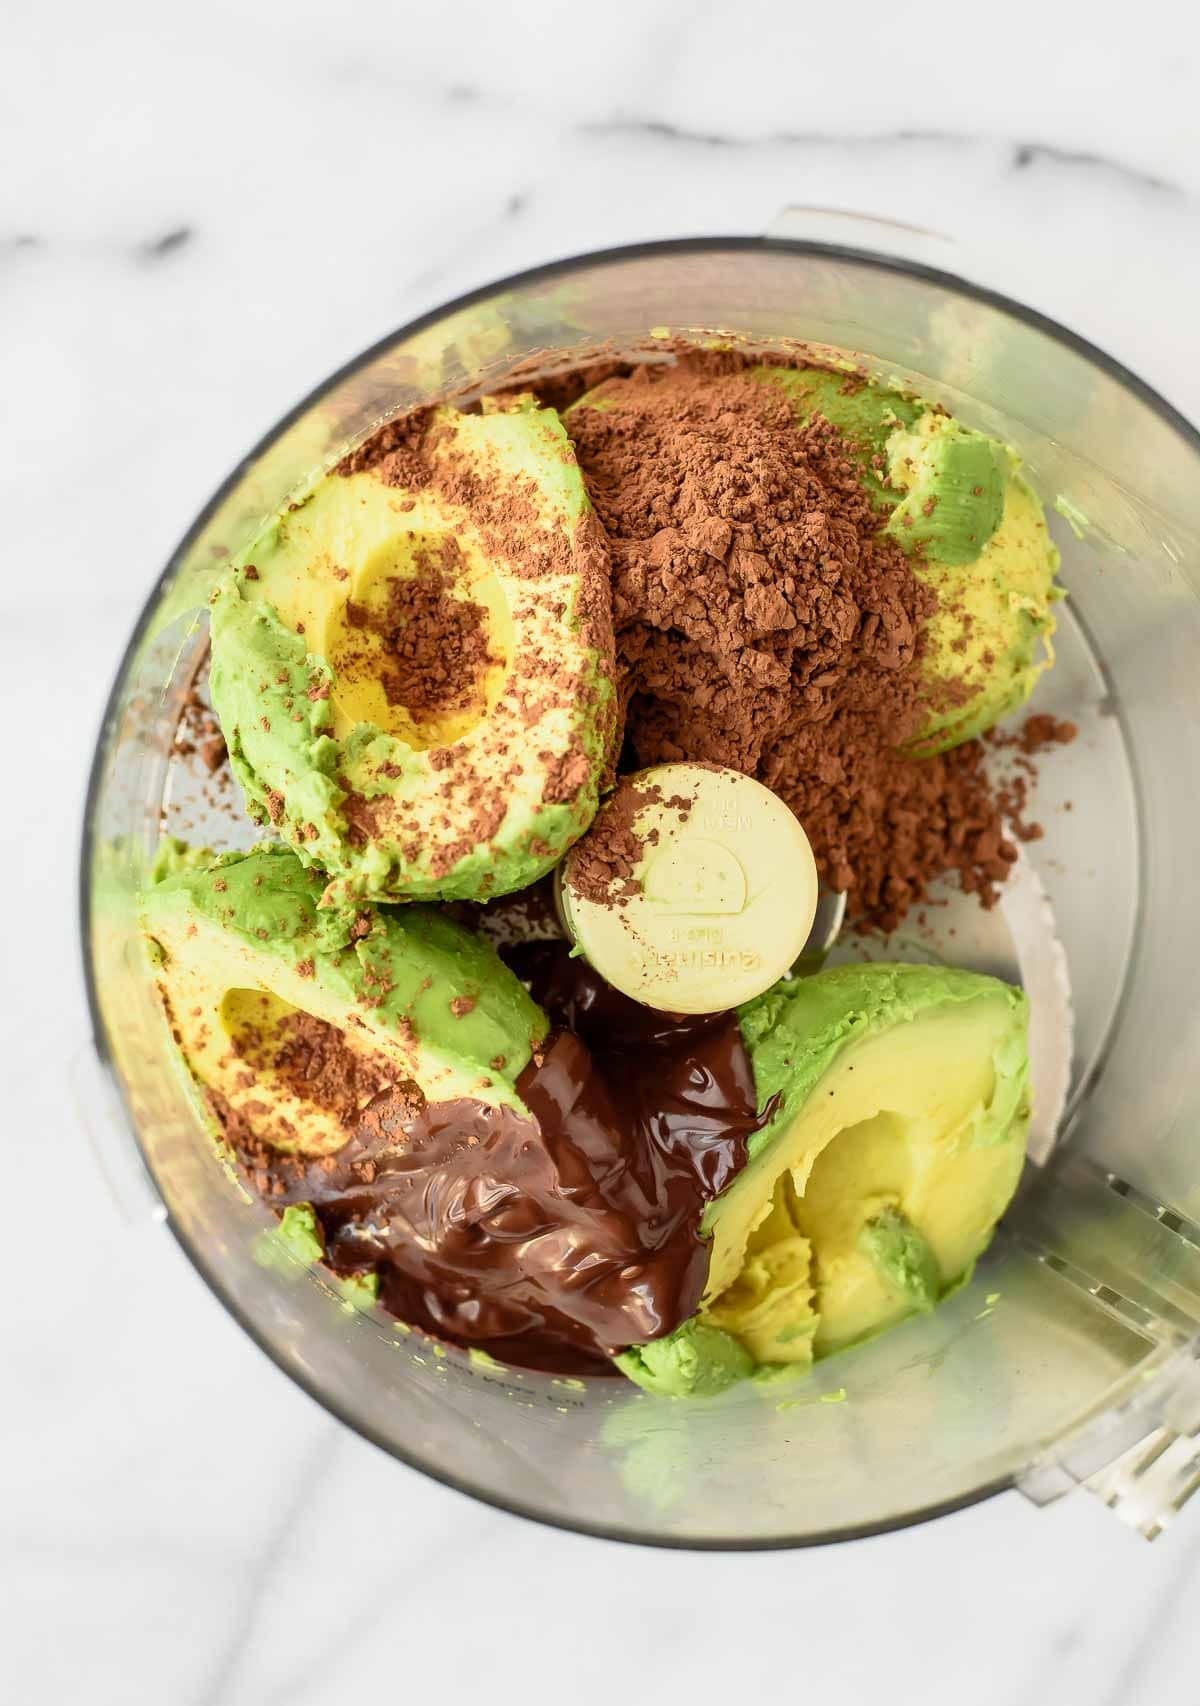 fresh avocado and cocoa powder in the bowl of a food processor